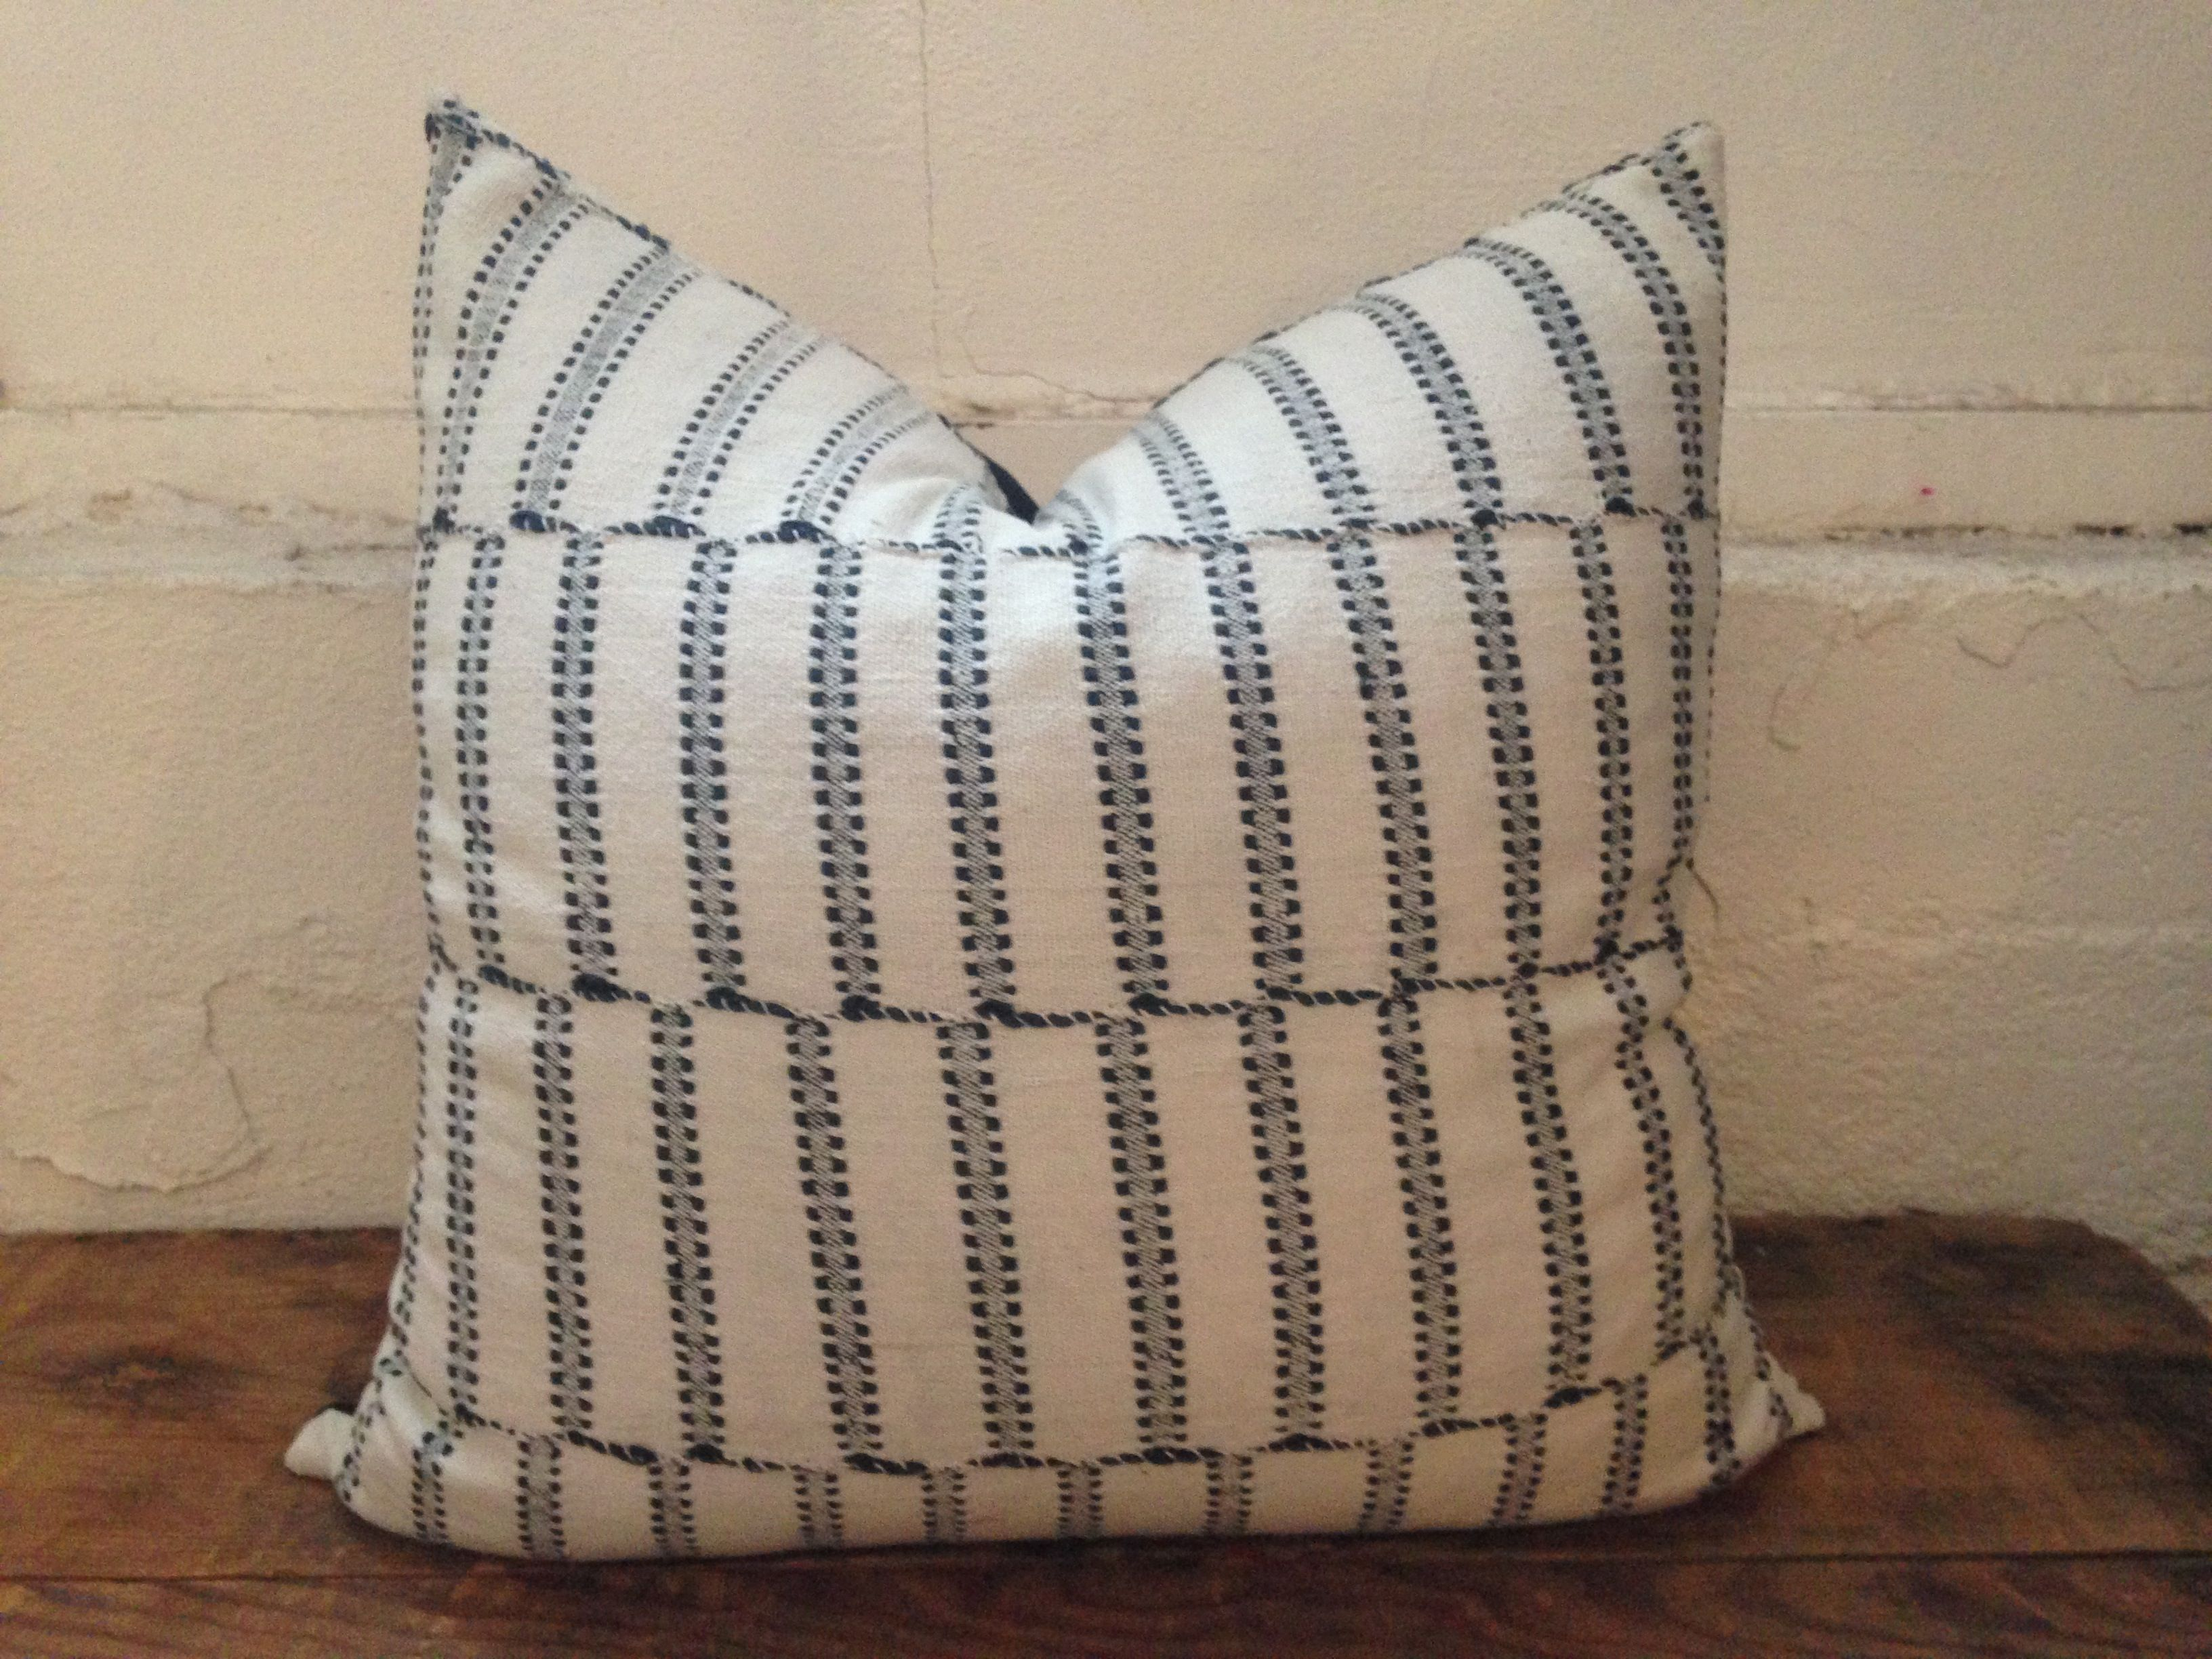 Our new favorite piece handwoven textile fashioned into gorgeous